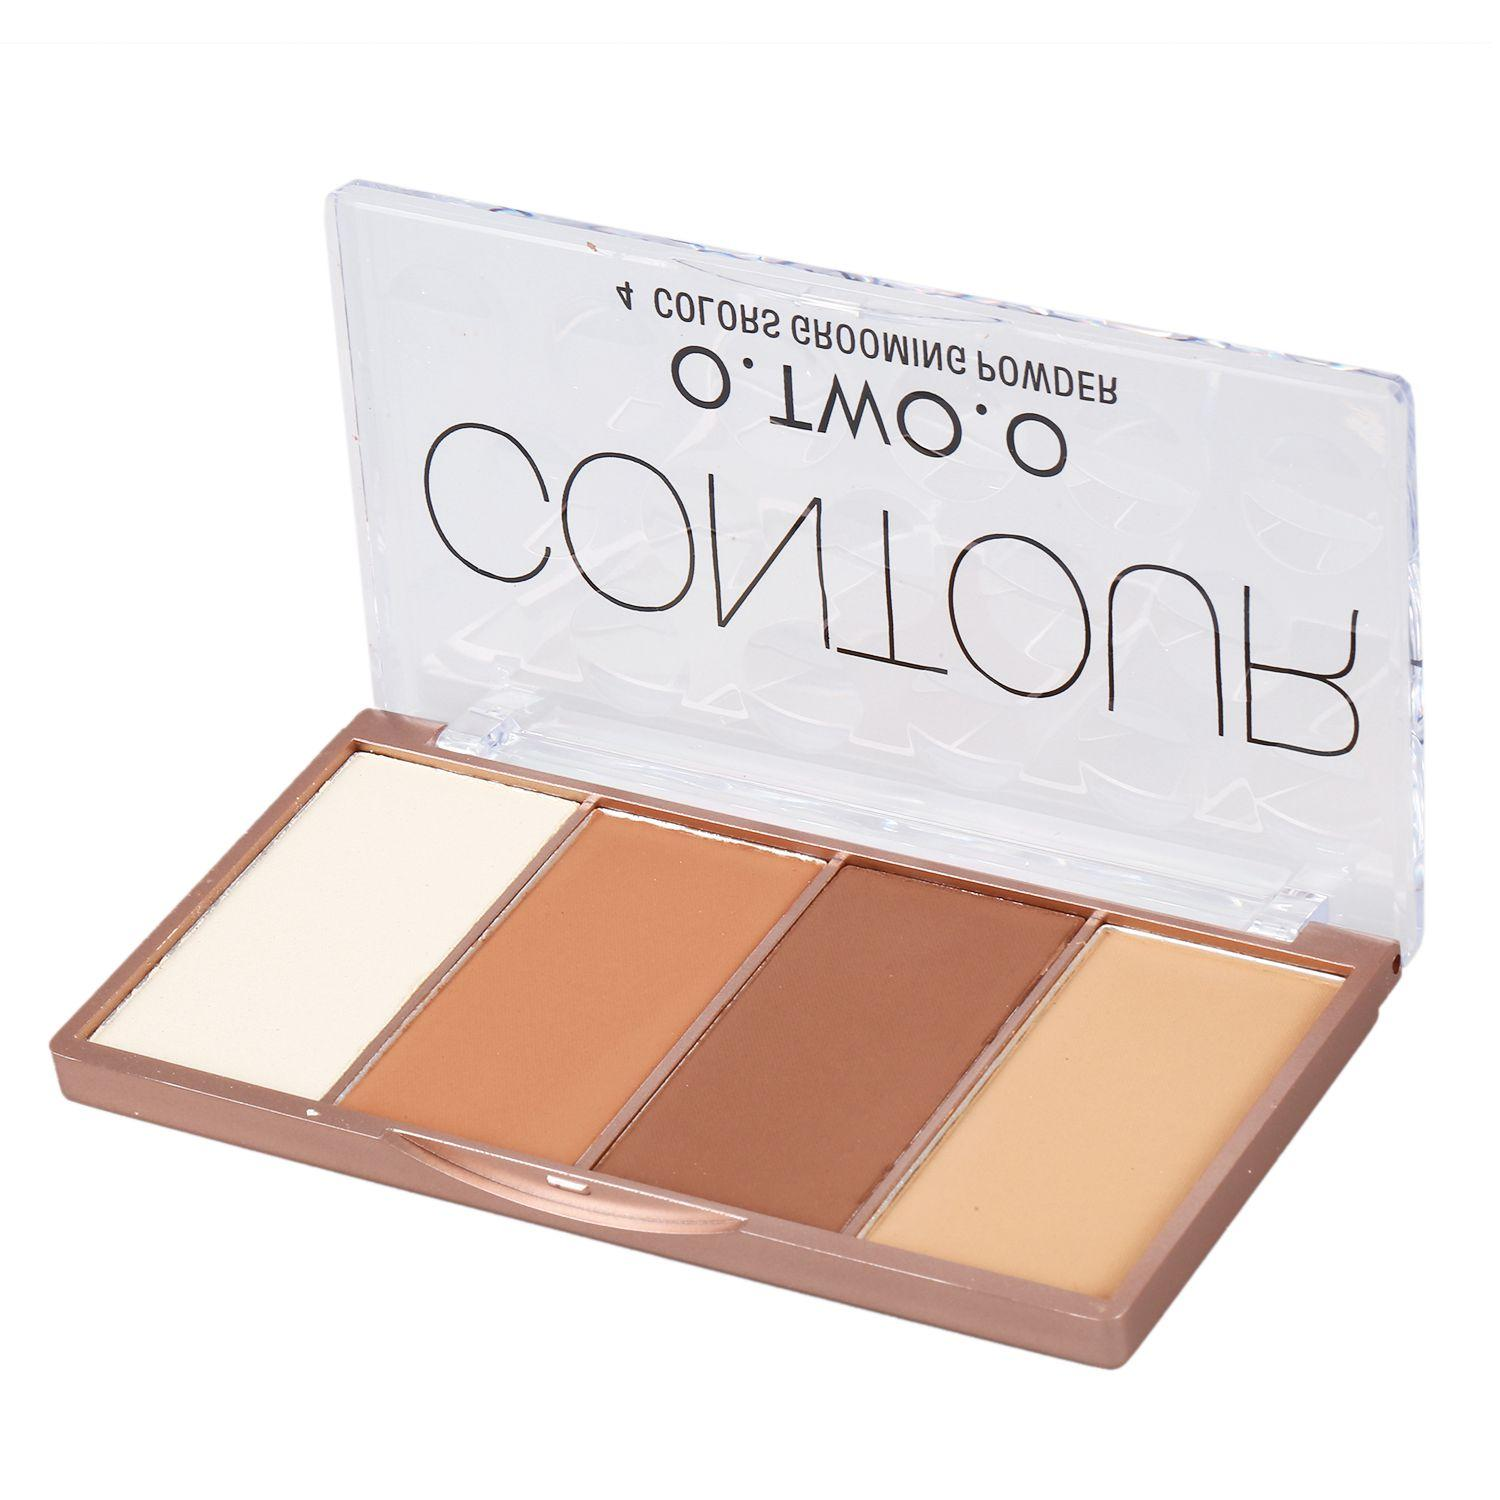 O.TWO.O 4 Colors Concealer Palette Face Makeup Base Contouring Palette Foundation Concealer Powder #01 Philippines